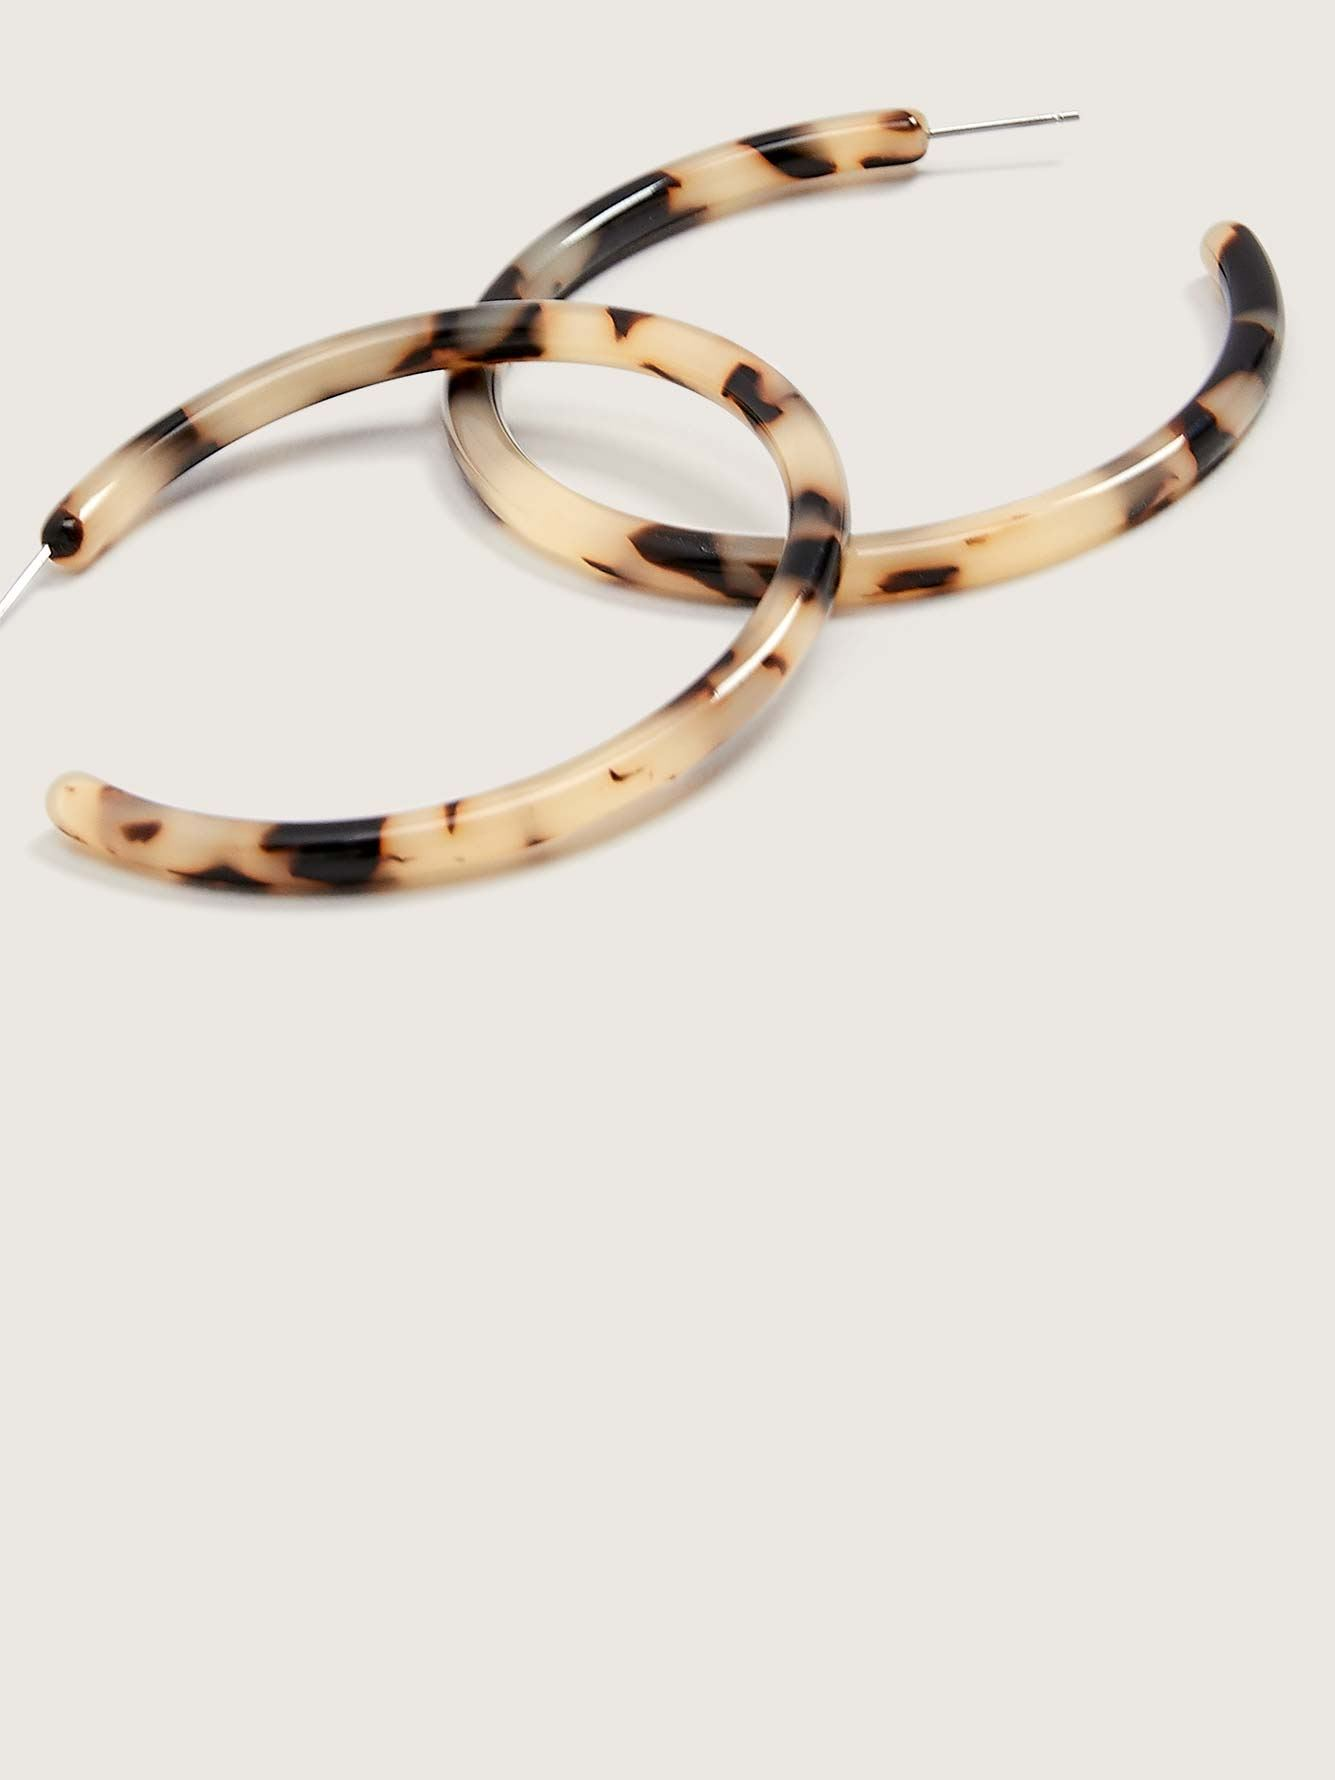 Large Hoops Earrings - Machete